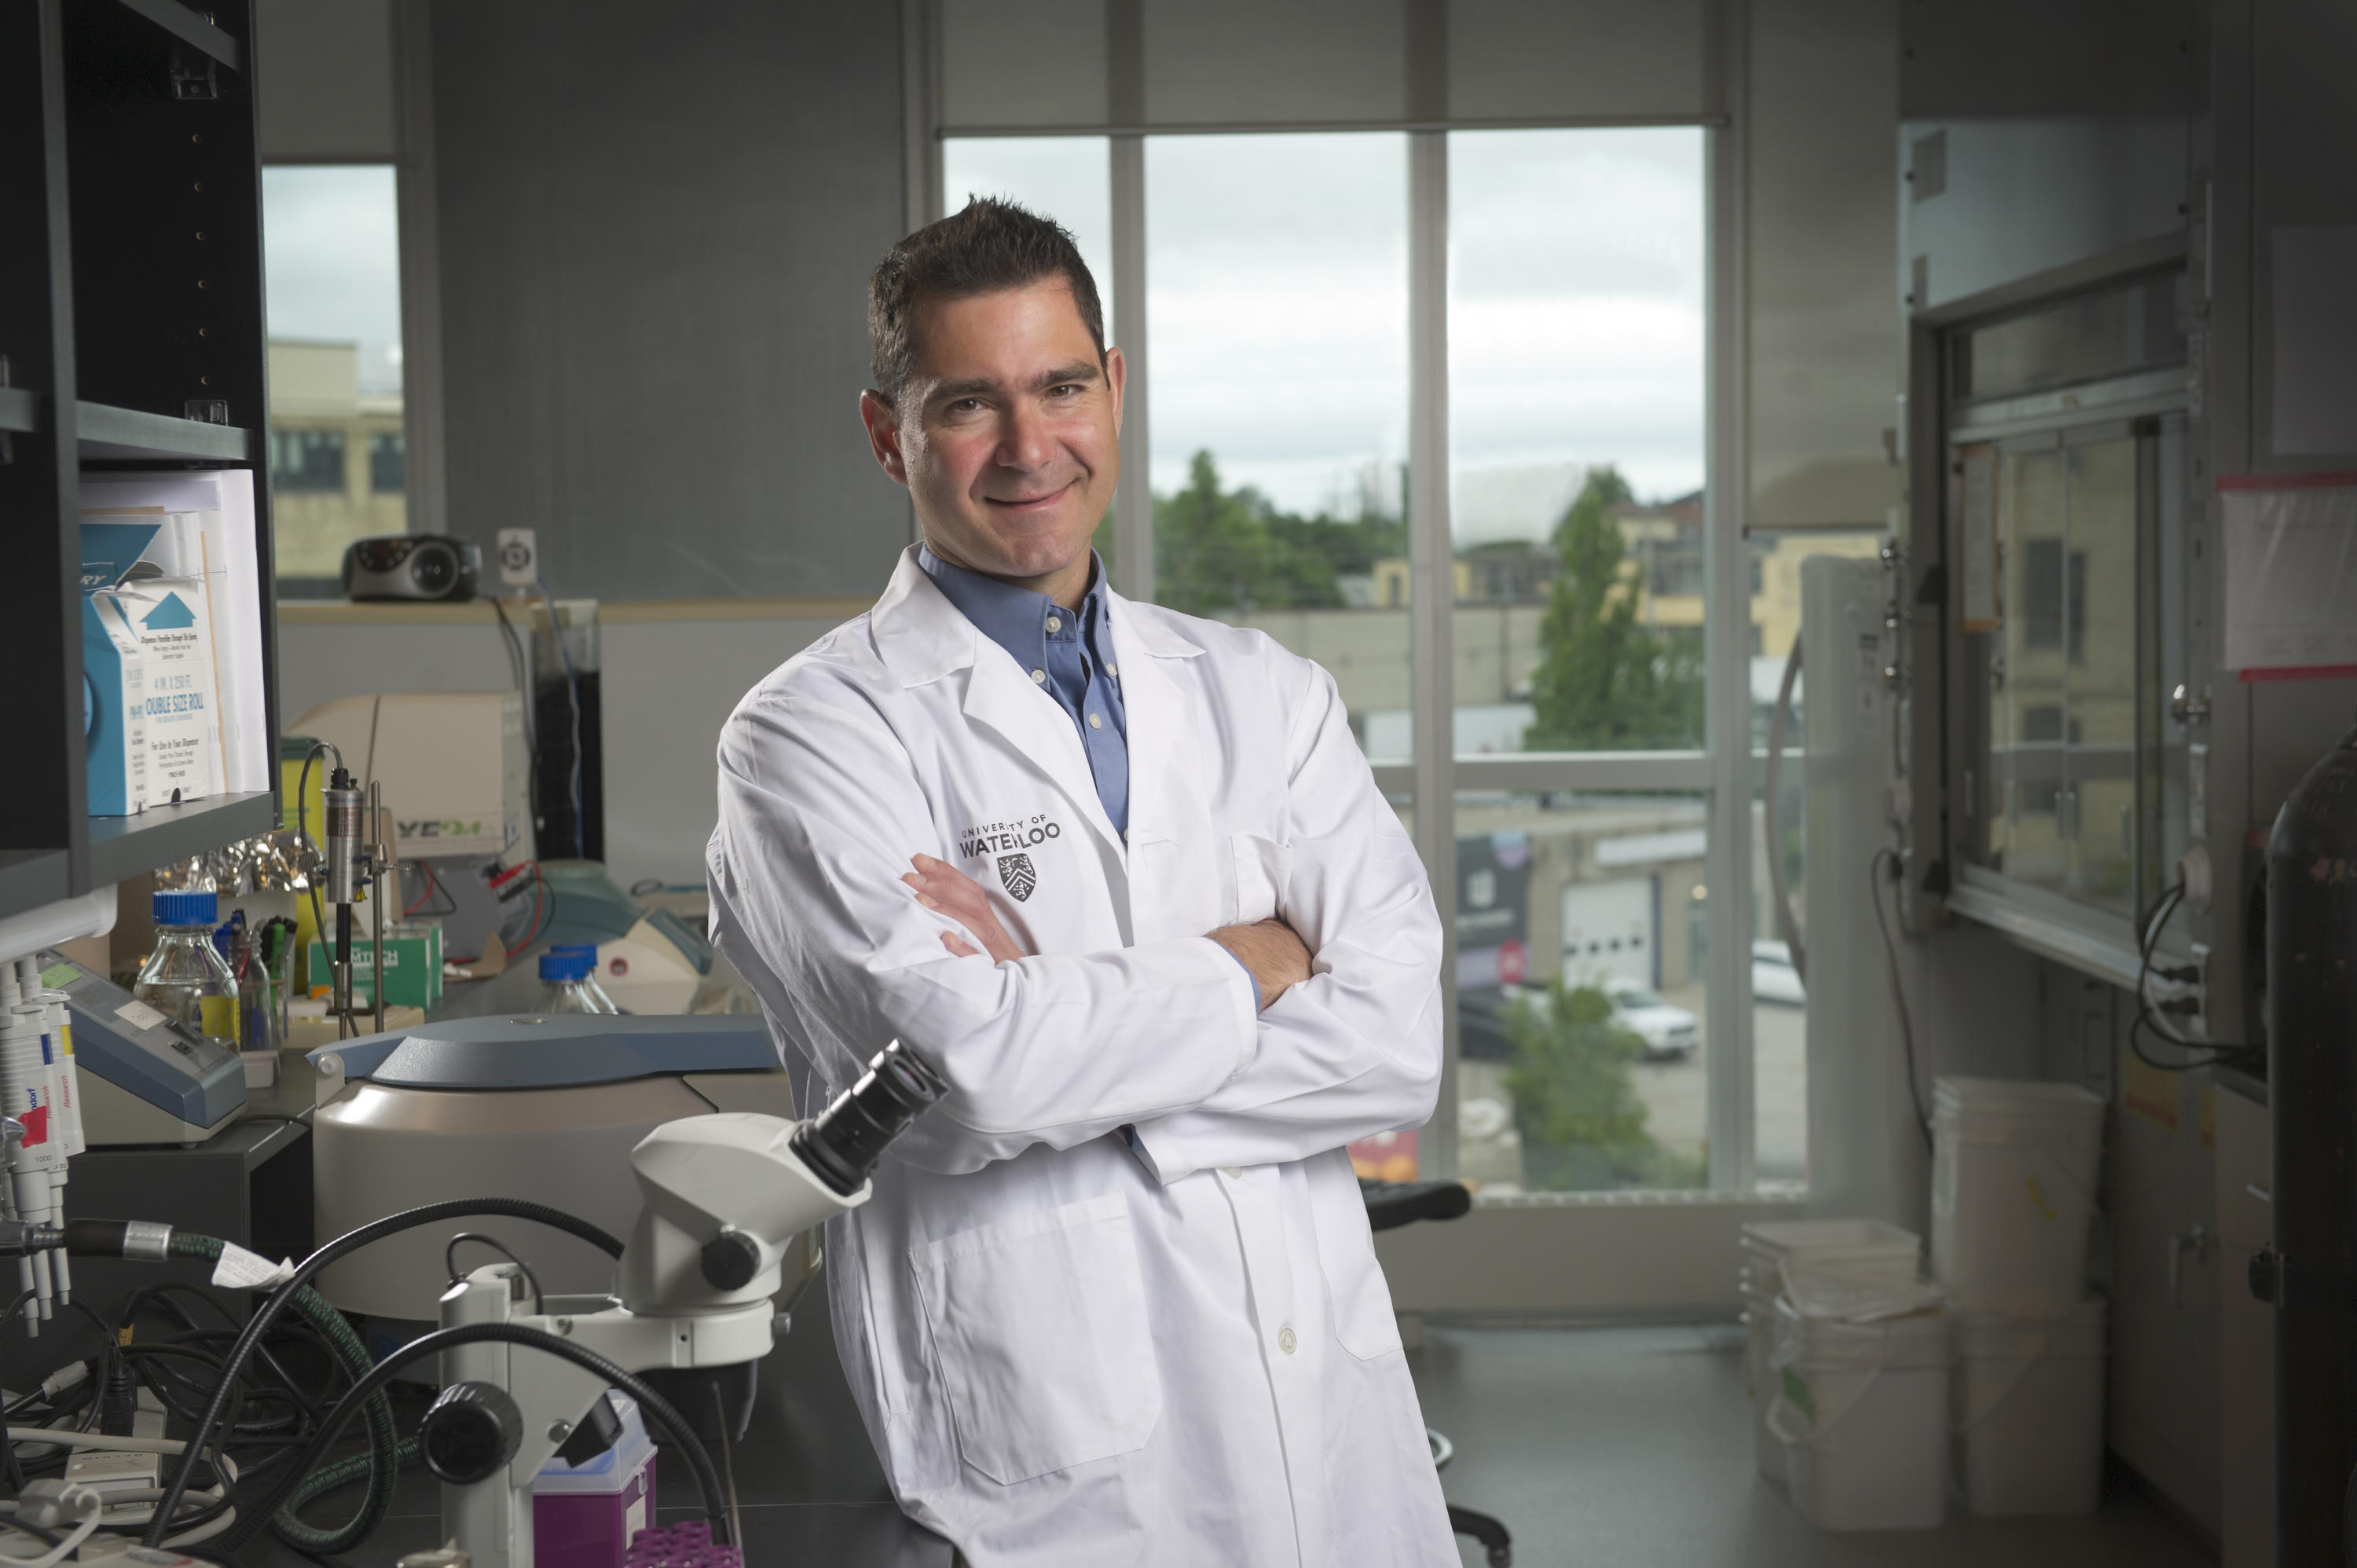 Roderick Slavcev in a lab coat standing in lab